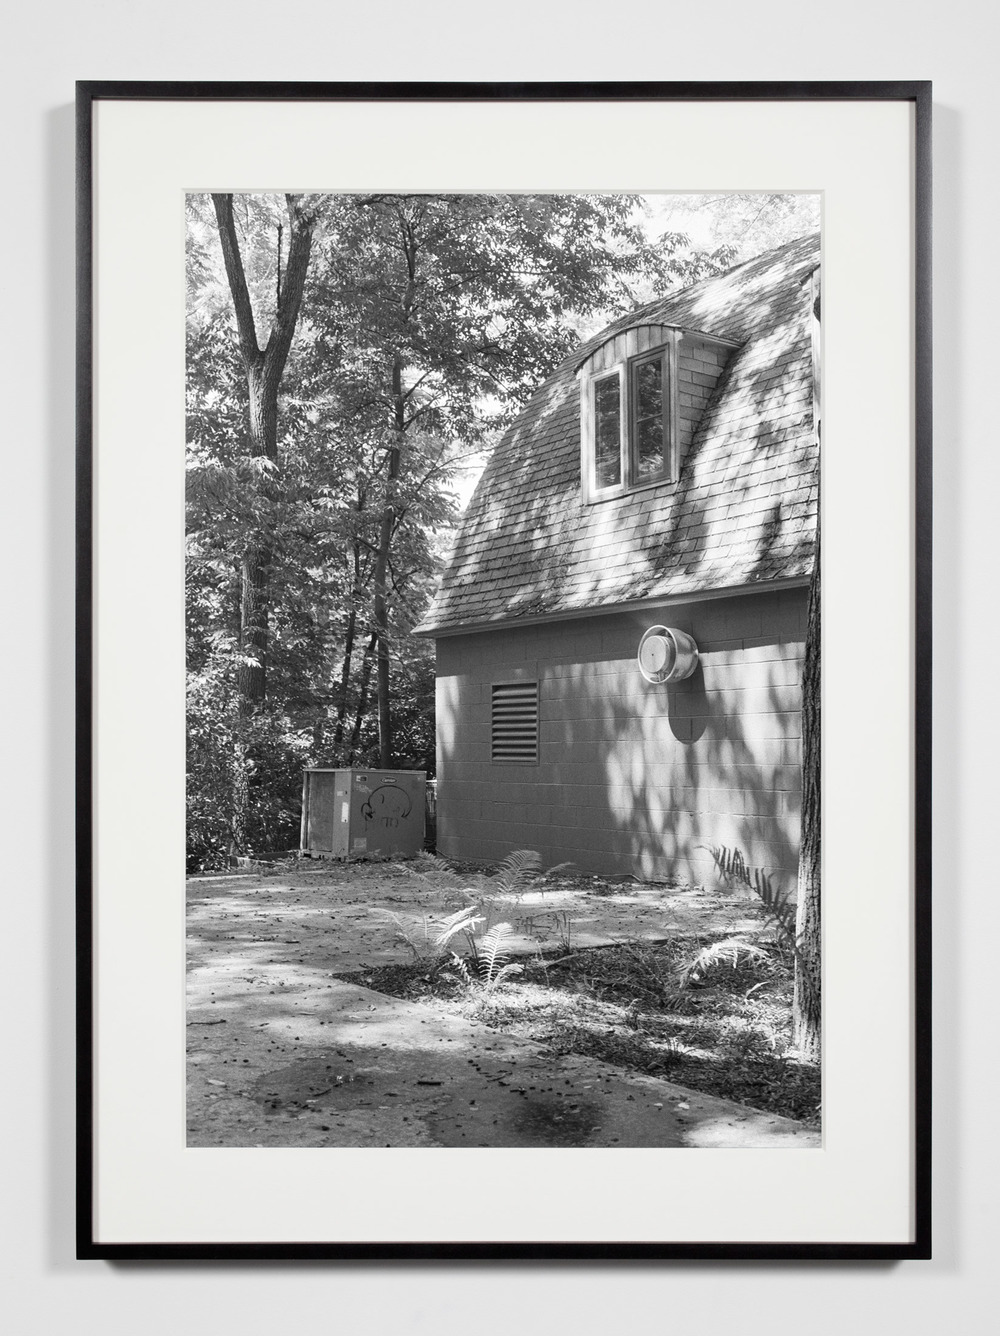 College Darkroom Building, Annandale-on-Hudson, New York, July 11, 2009    2011   Epson Ultrachrome K3 archival ink jet print on Hahnemühle Photo Rag paper  36 3/8 x 26 3/8 inches   Industrial Portraits, 2008–